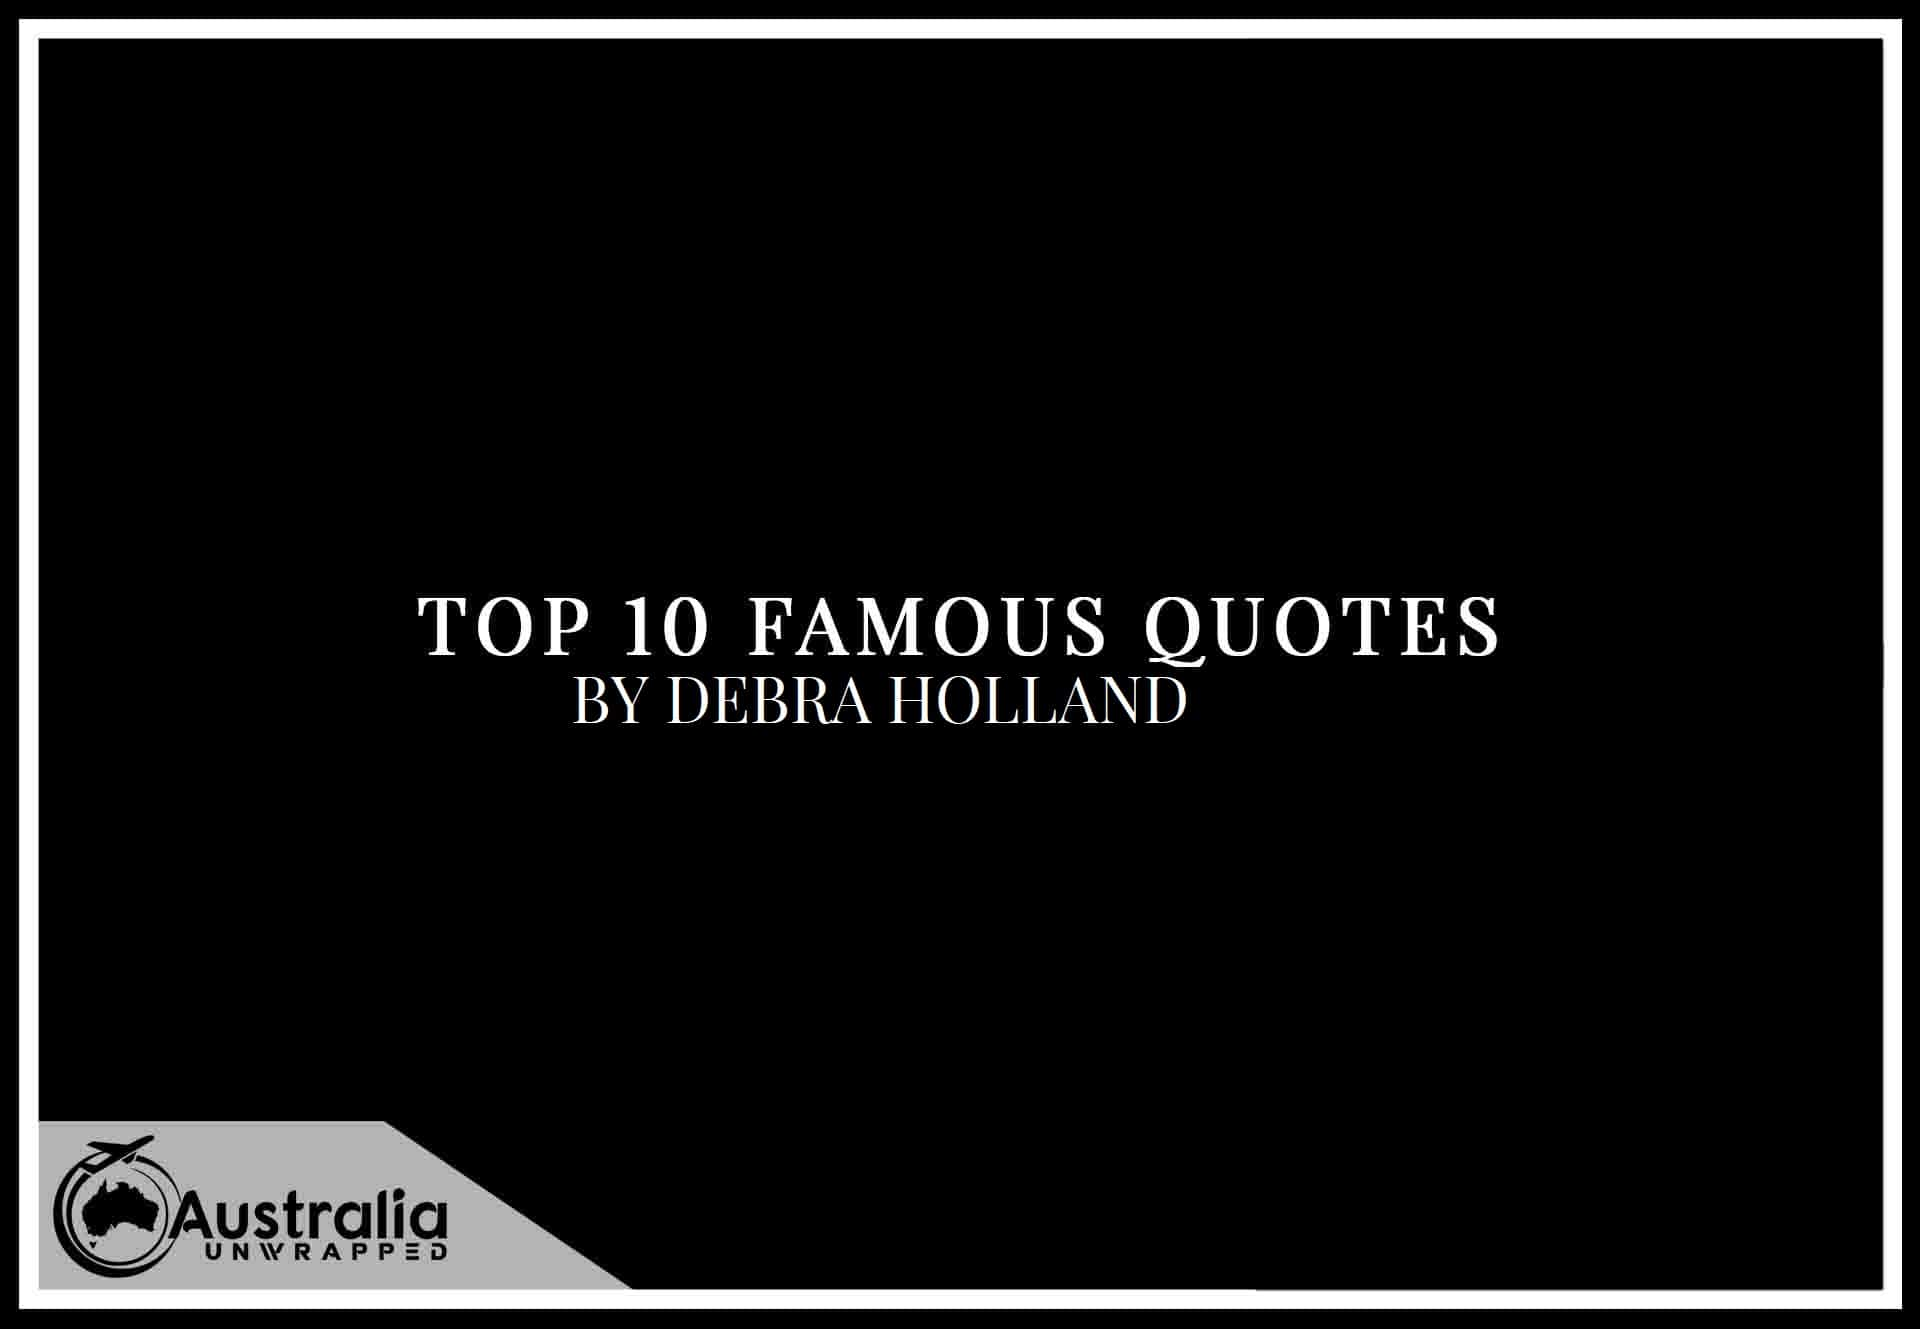 Top 10 Famous Quotes by Author Debra Holland